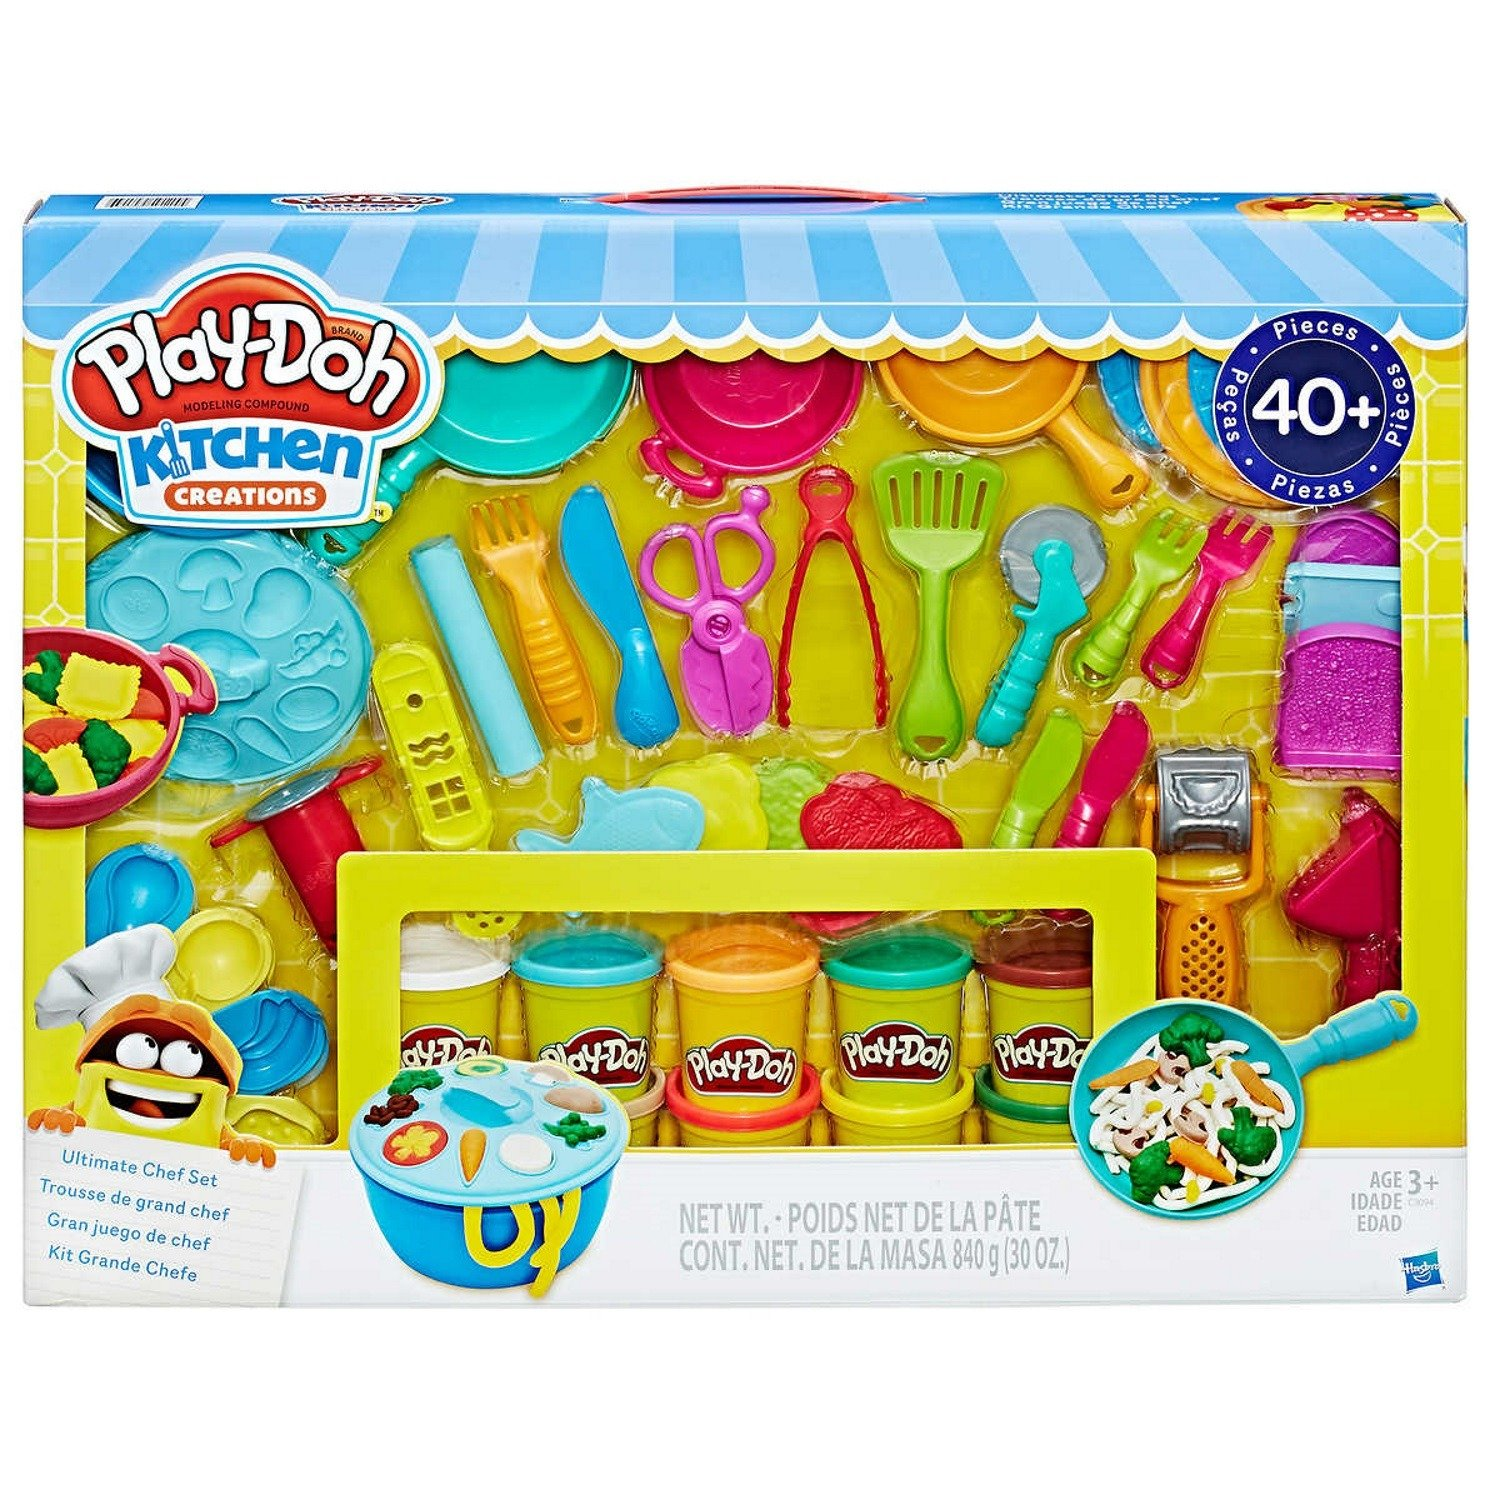 Play-Doh Kitchen Creations Ultimate Chef Set - Create and Make Meals with Play-Doh Kitchen Tools - 40+ Pieces & 10 Cans of Play-Doh by Play-Doh